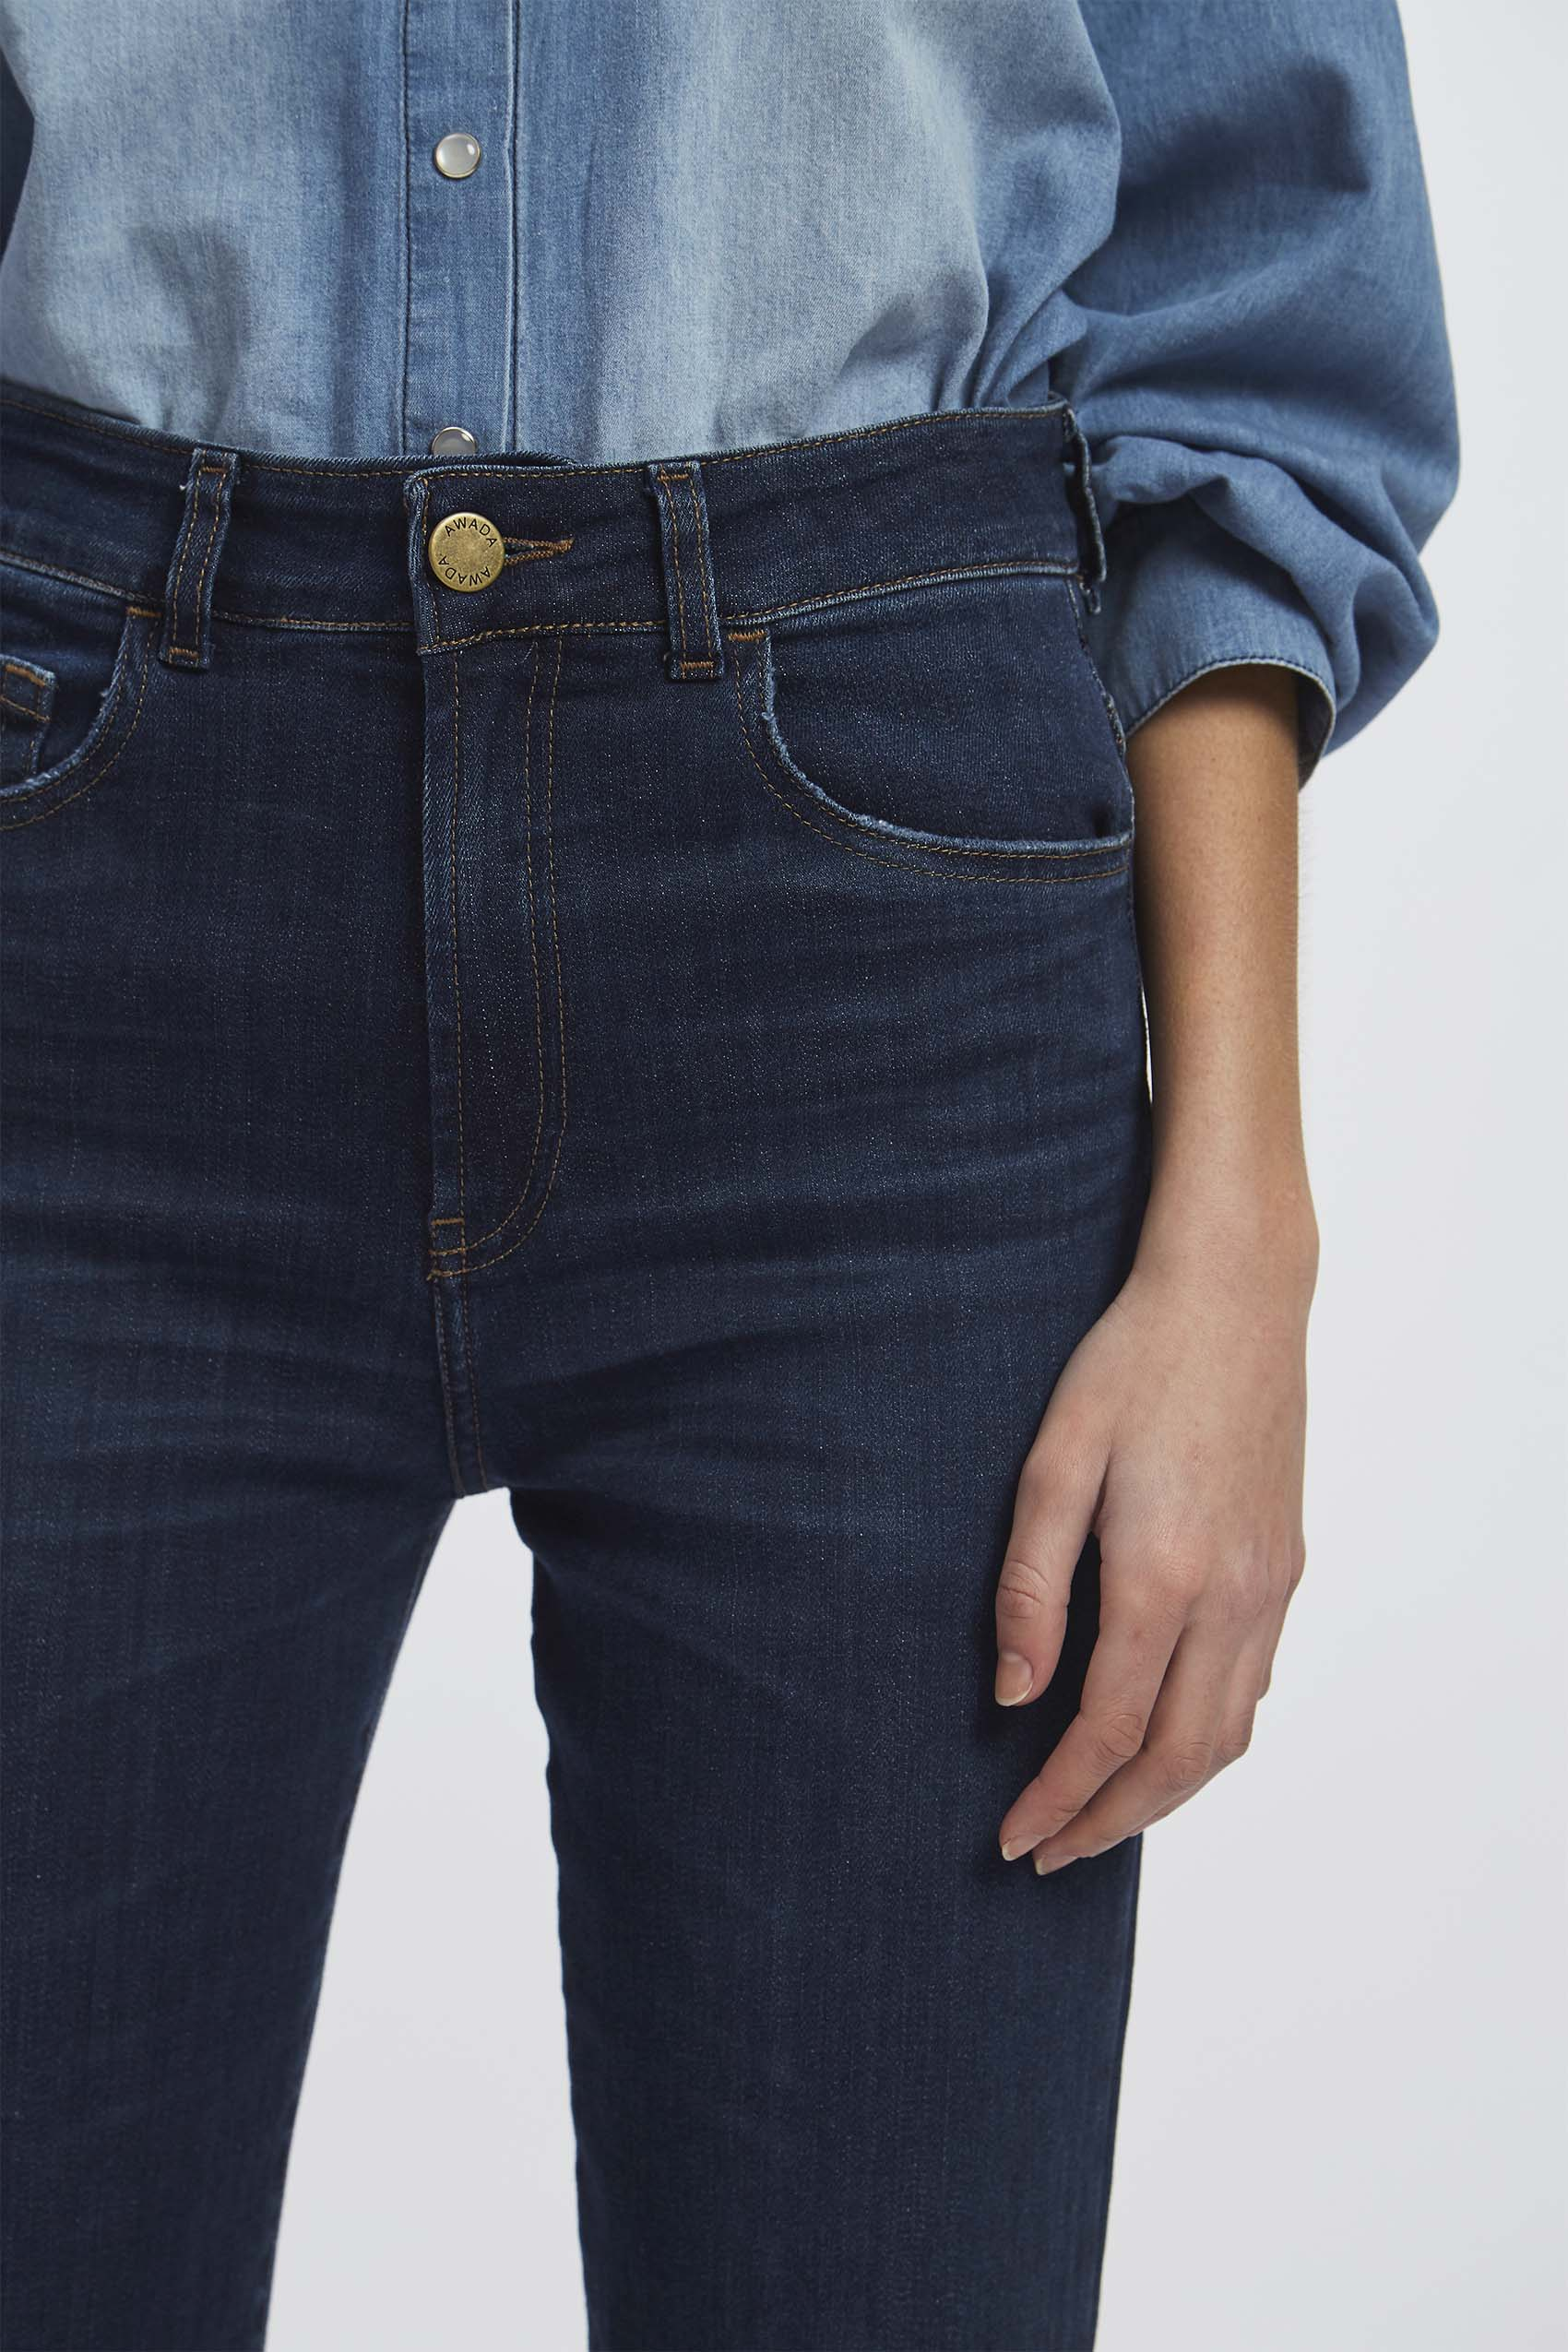 awada_oxford-cropped-jim_40-30-2020__picture-16275